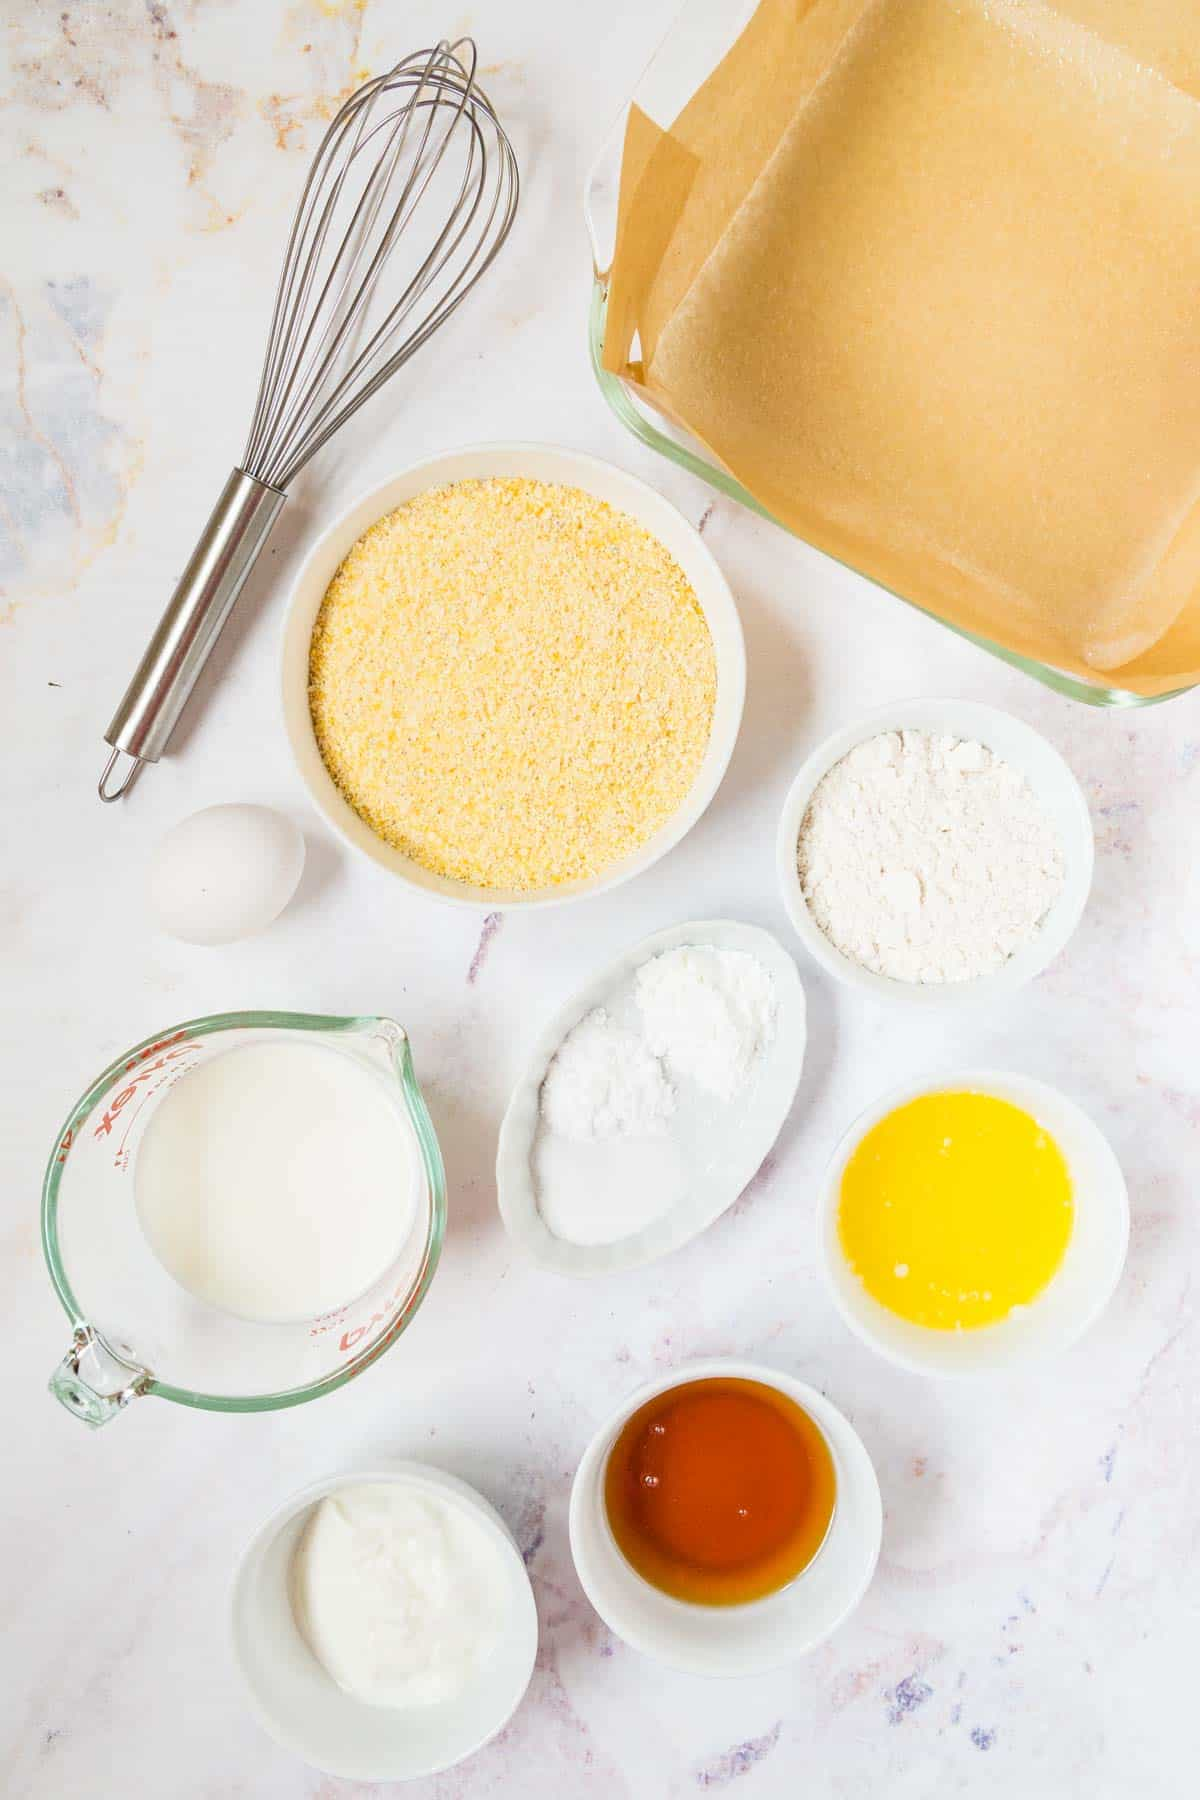 ingredients in small bowls with cornmeal, flour, honey, yogurt, and milk